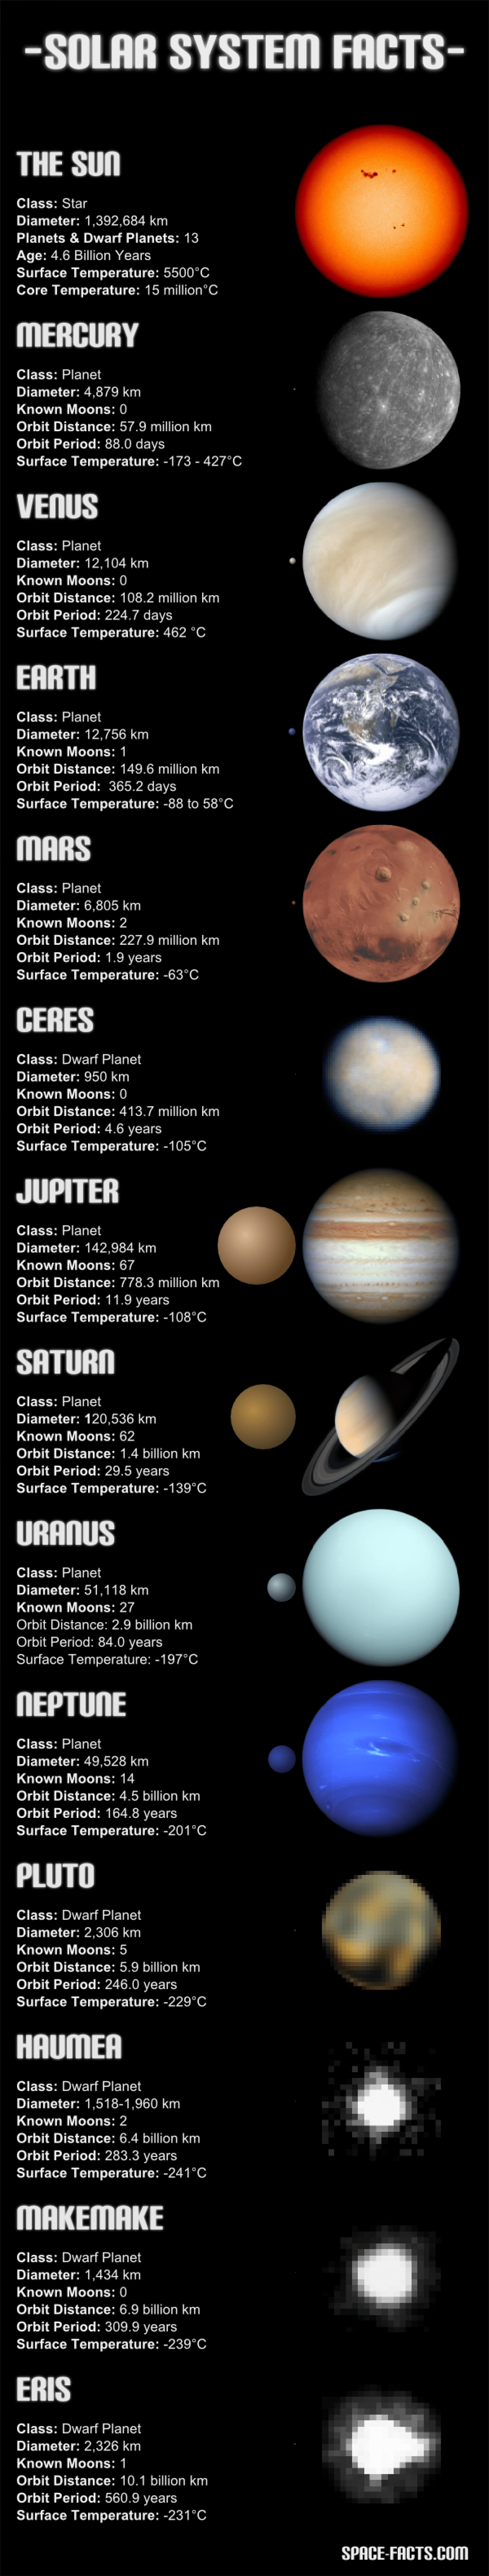 Solar System Planets And Dwarf Planets